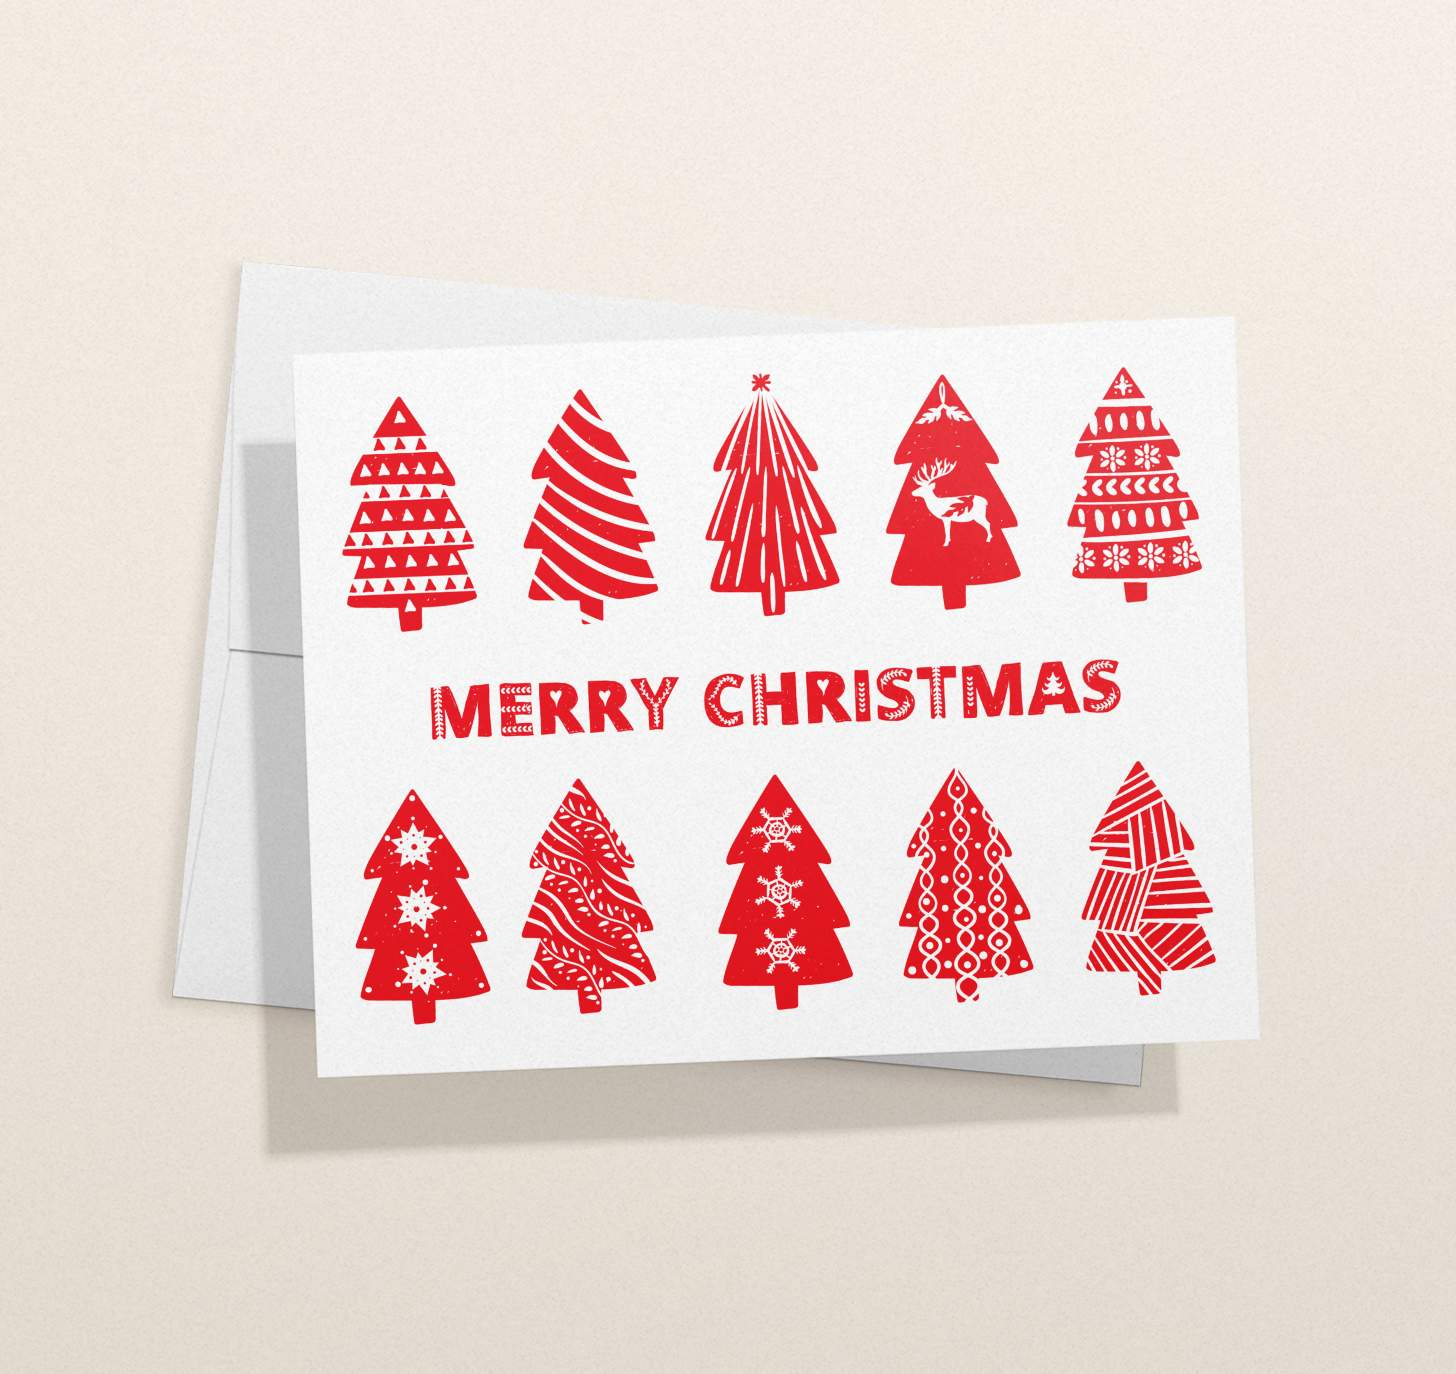 Red and white Merry Christmas with Christmas trees designs with envelope